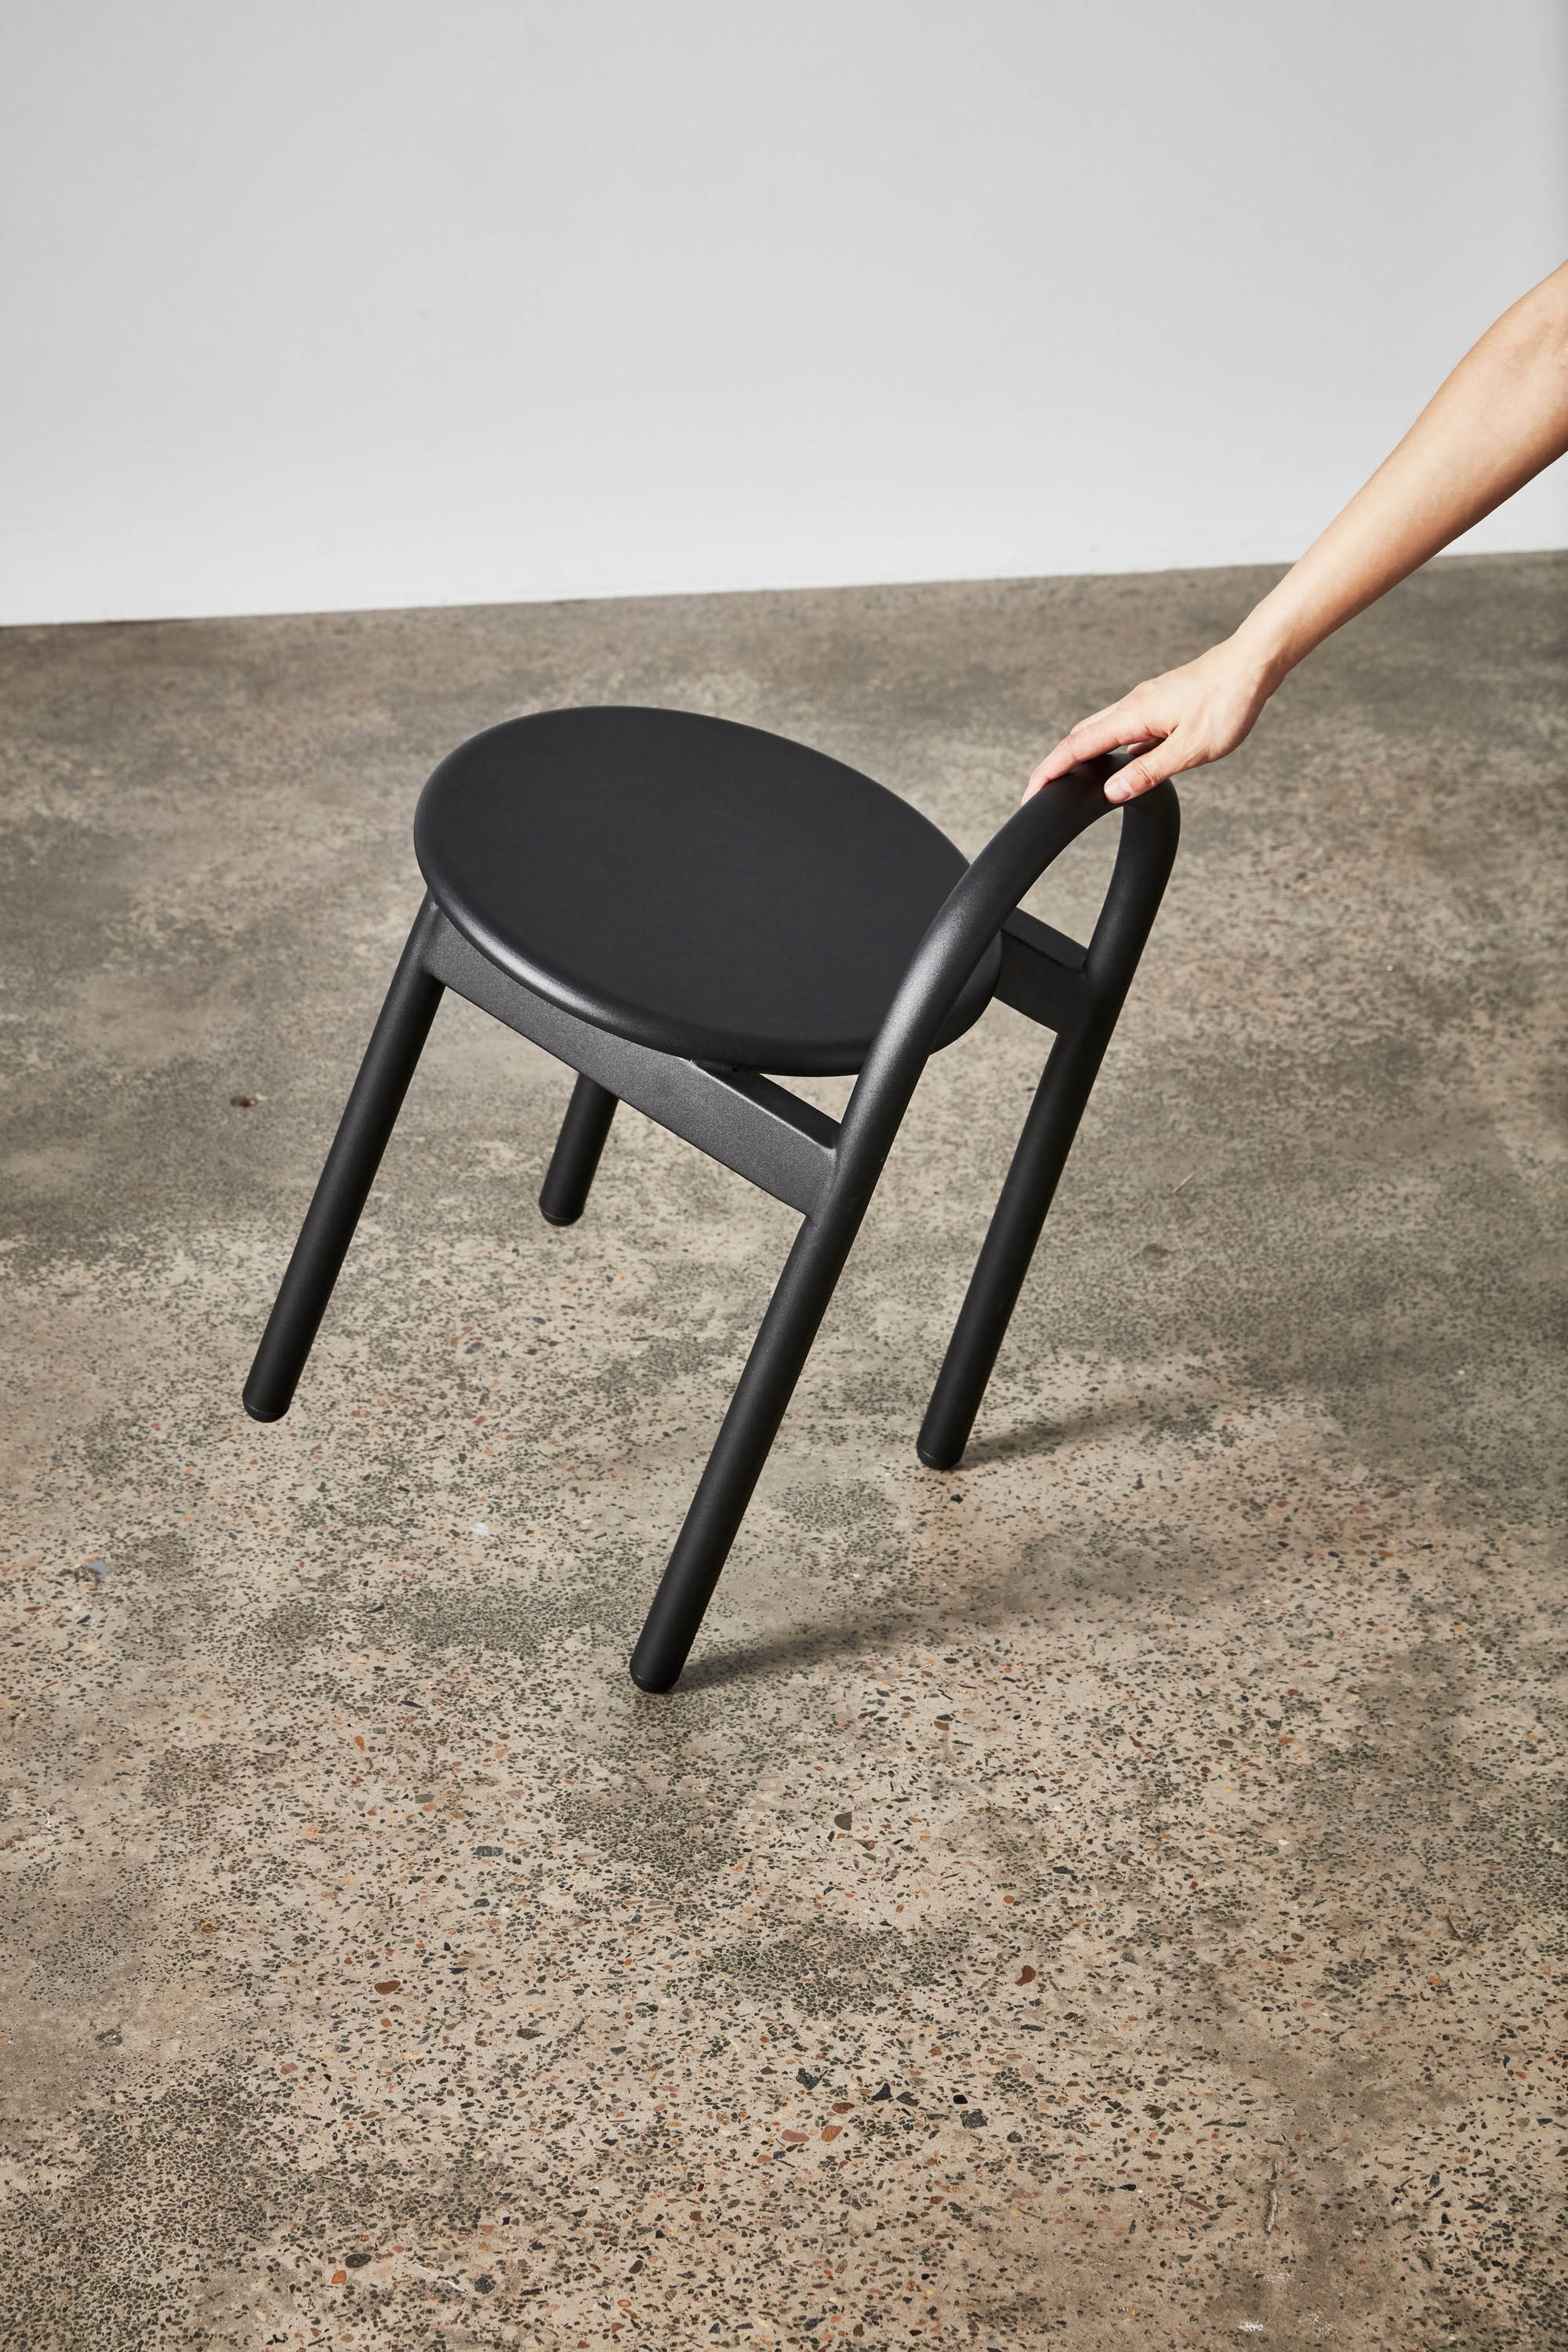 Bobby Metal Low and Bar Stool | Stainless steel outdoor stool | DesignByThem